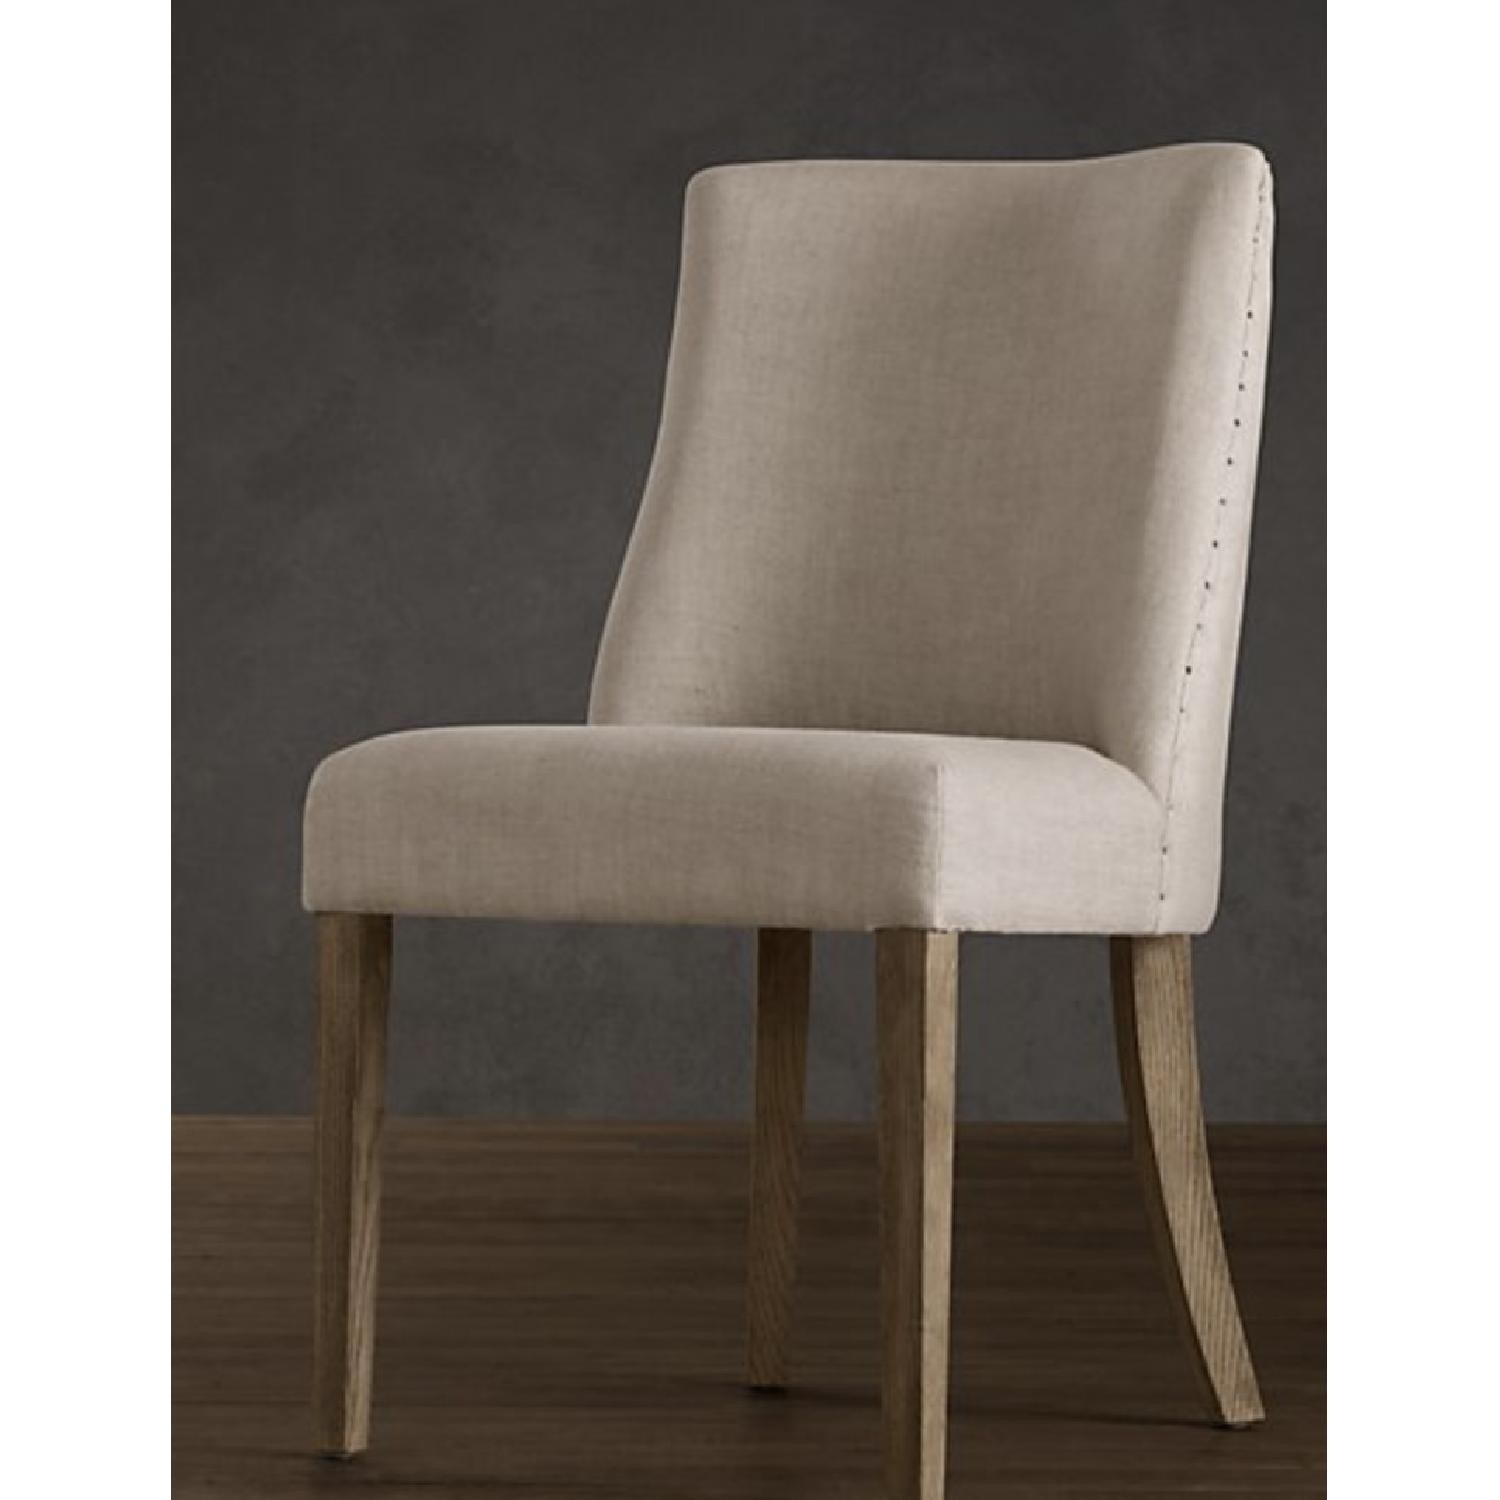 Restoration Hardware 1940S French Barrelback Fabric Chair - image-1